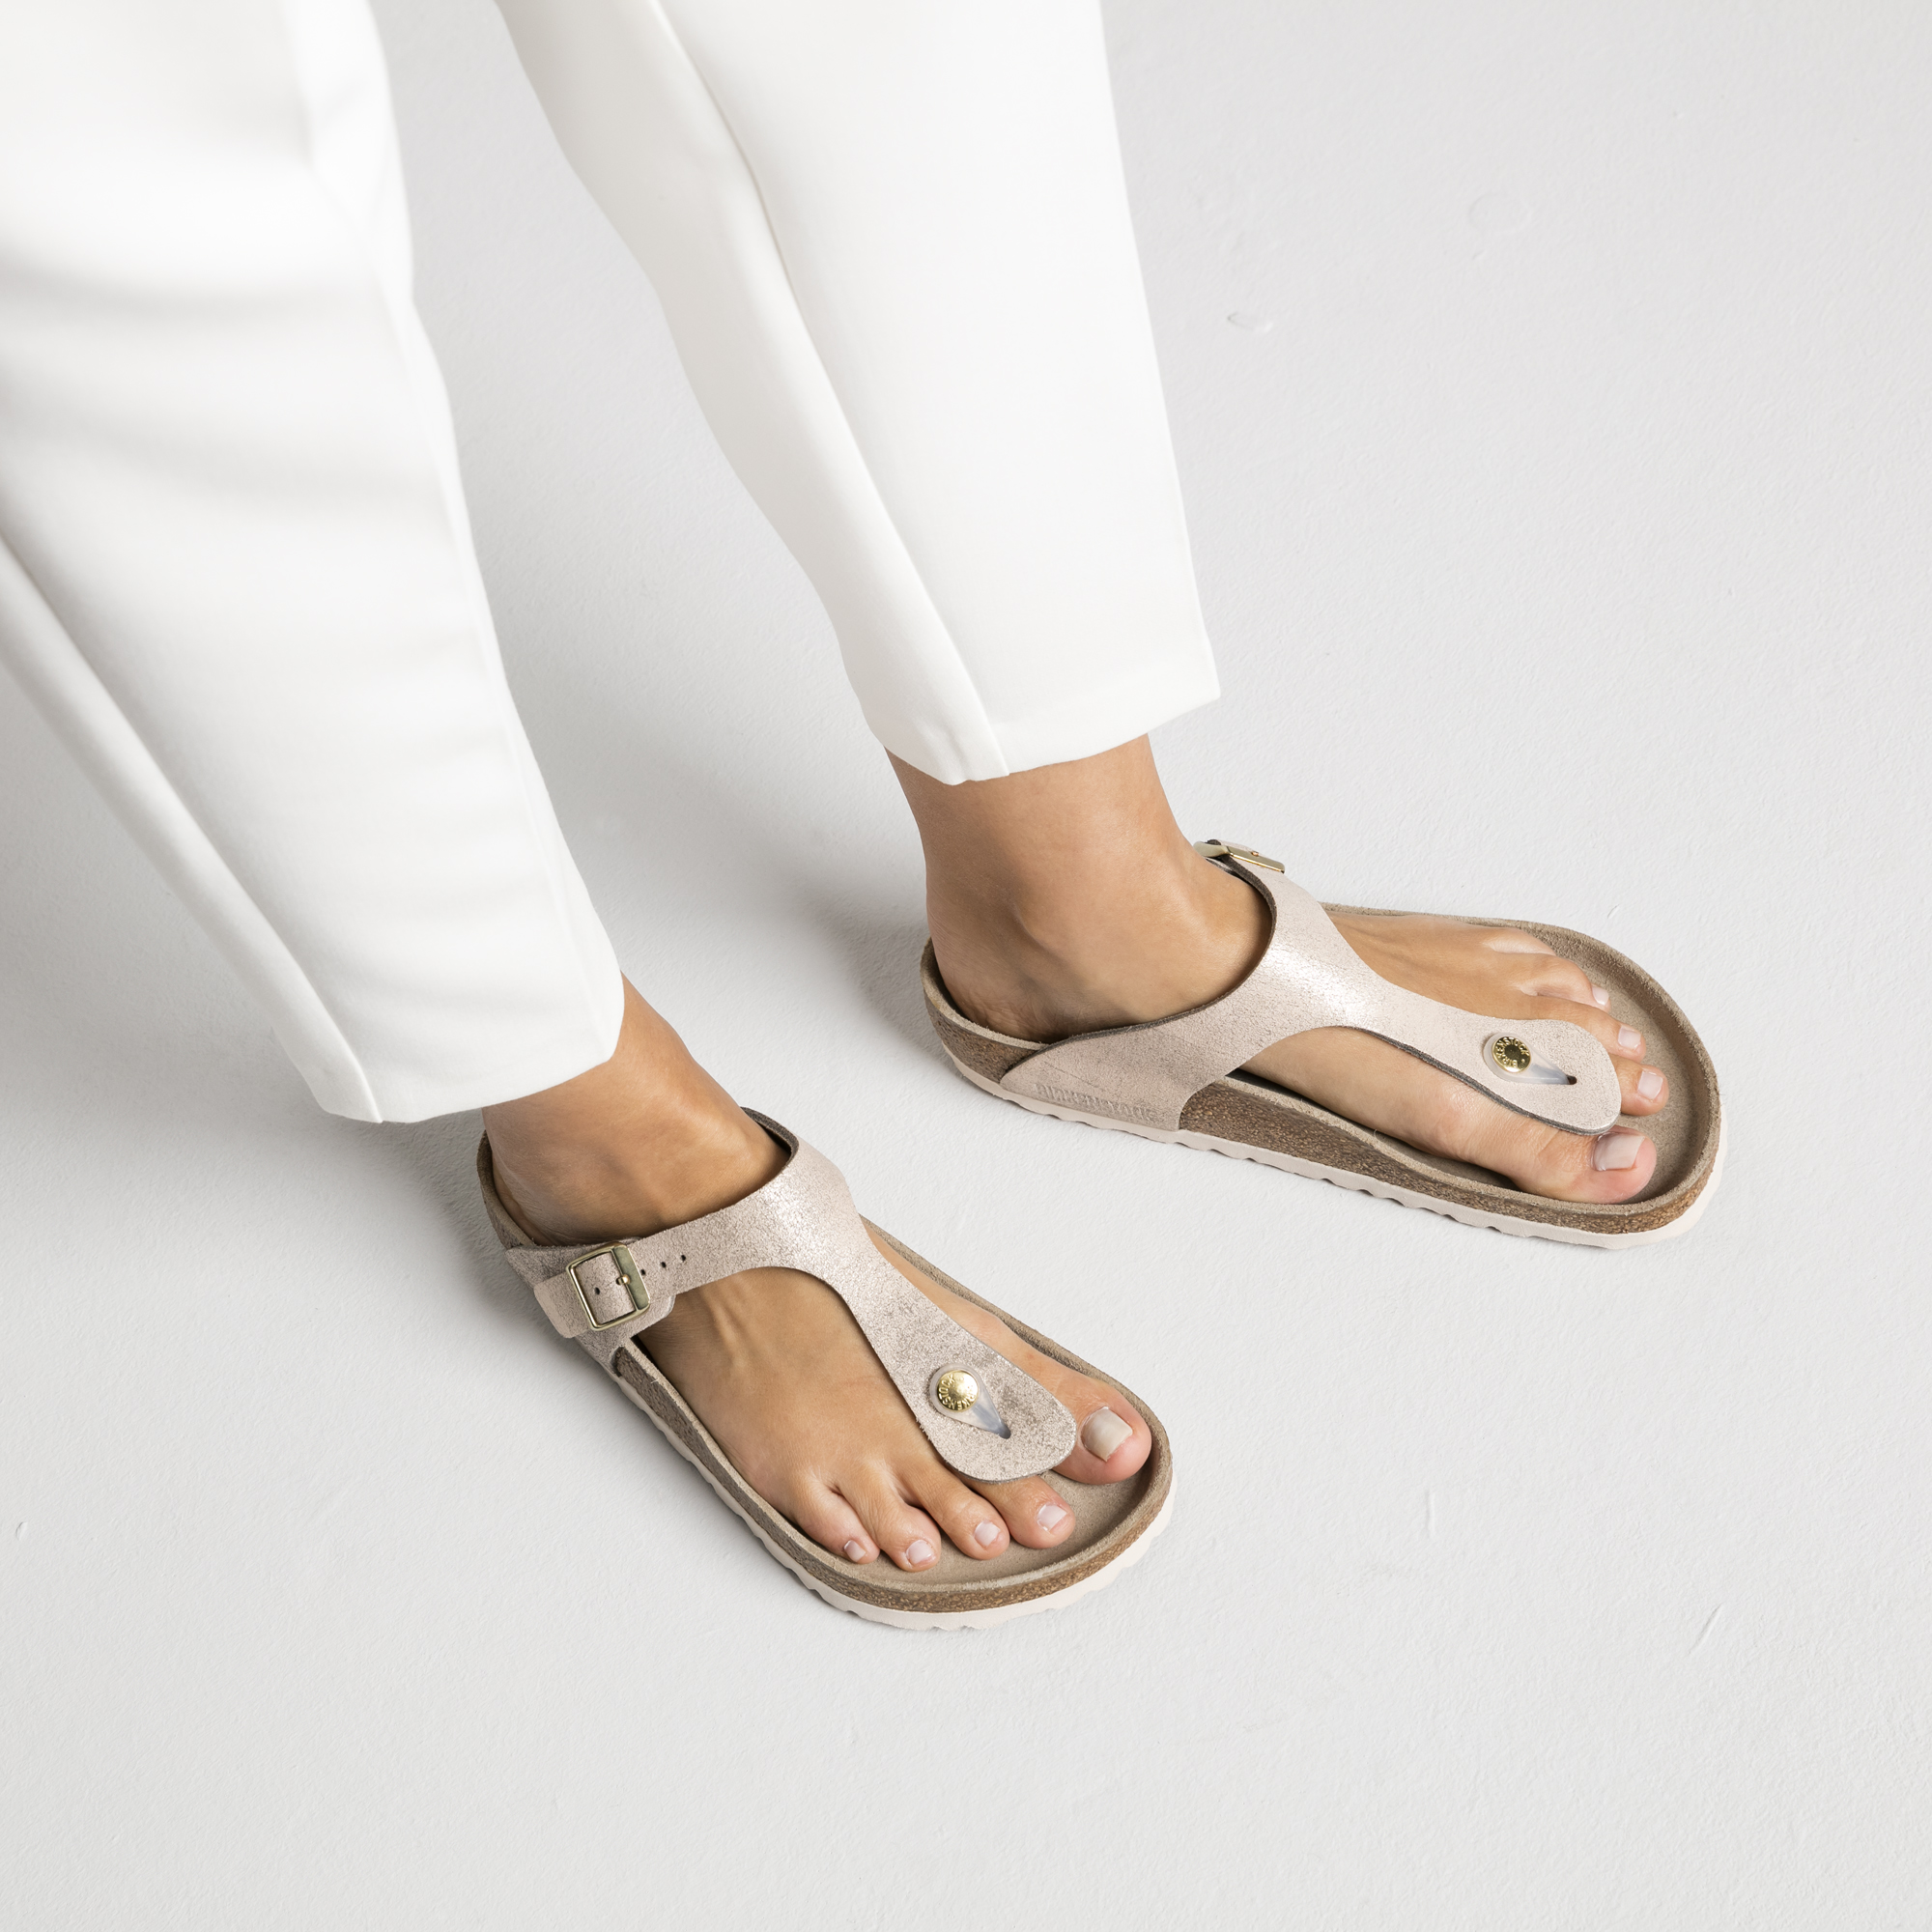 Gizeh BS Birkenstocks | Washed Metallic Rose Gold| Best